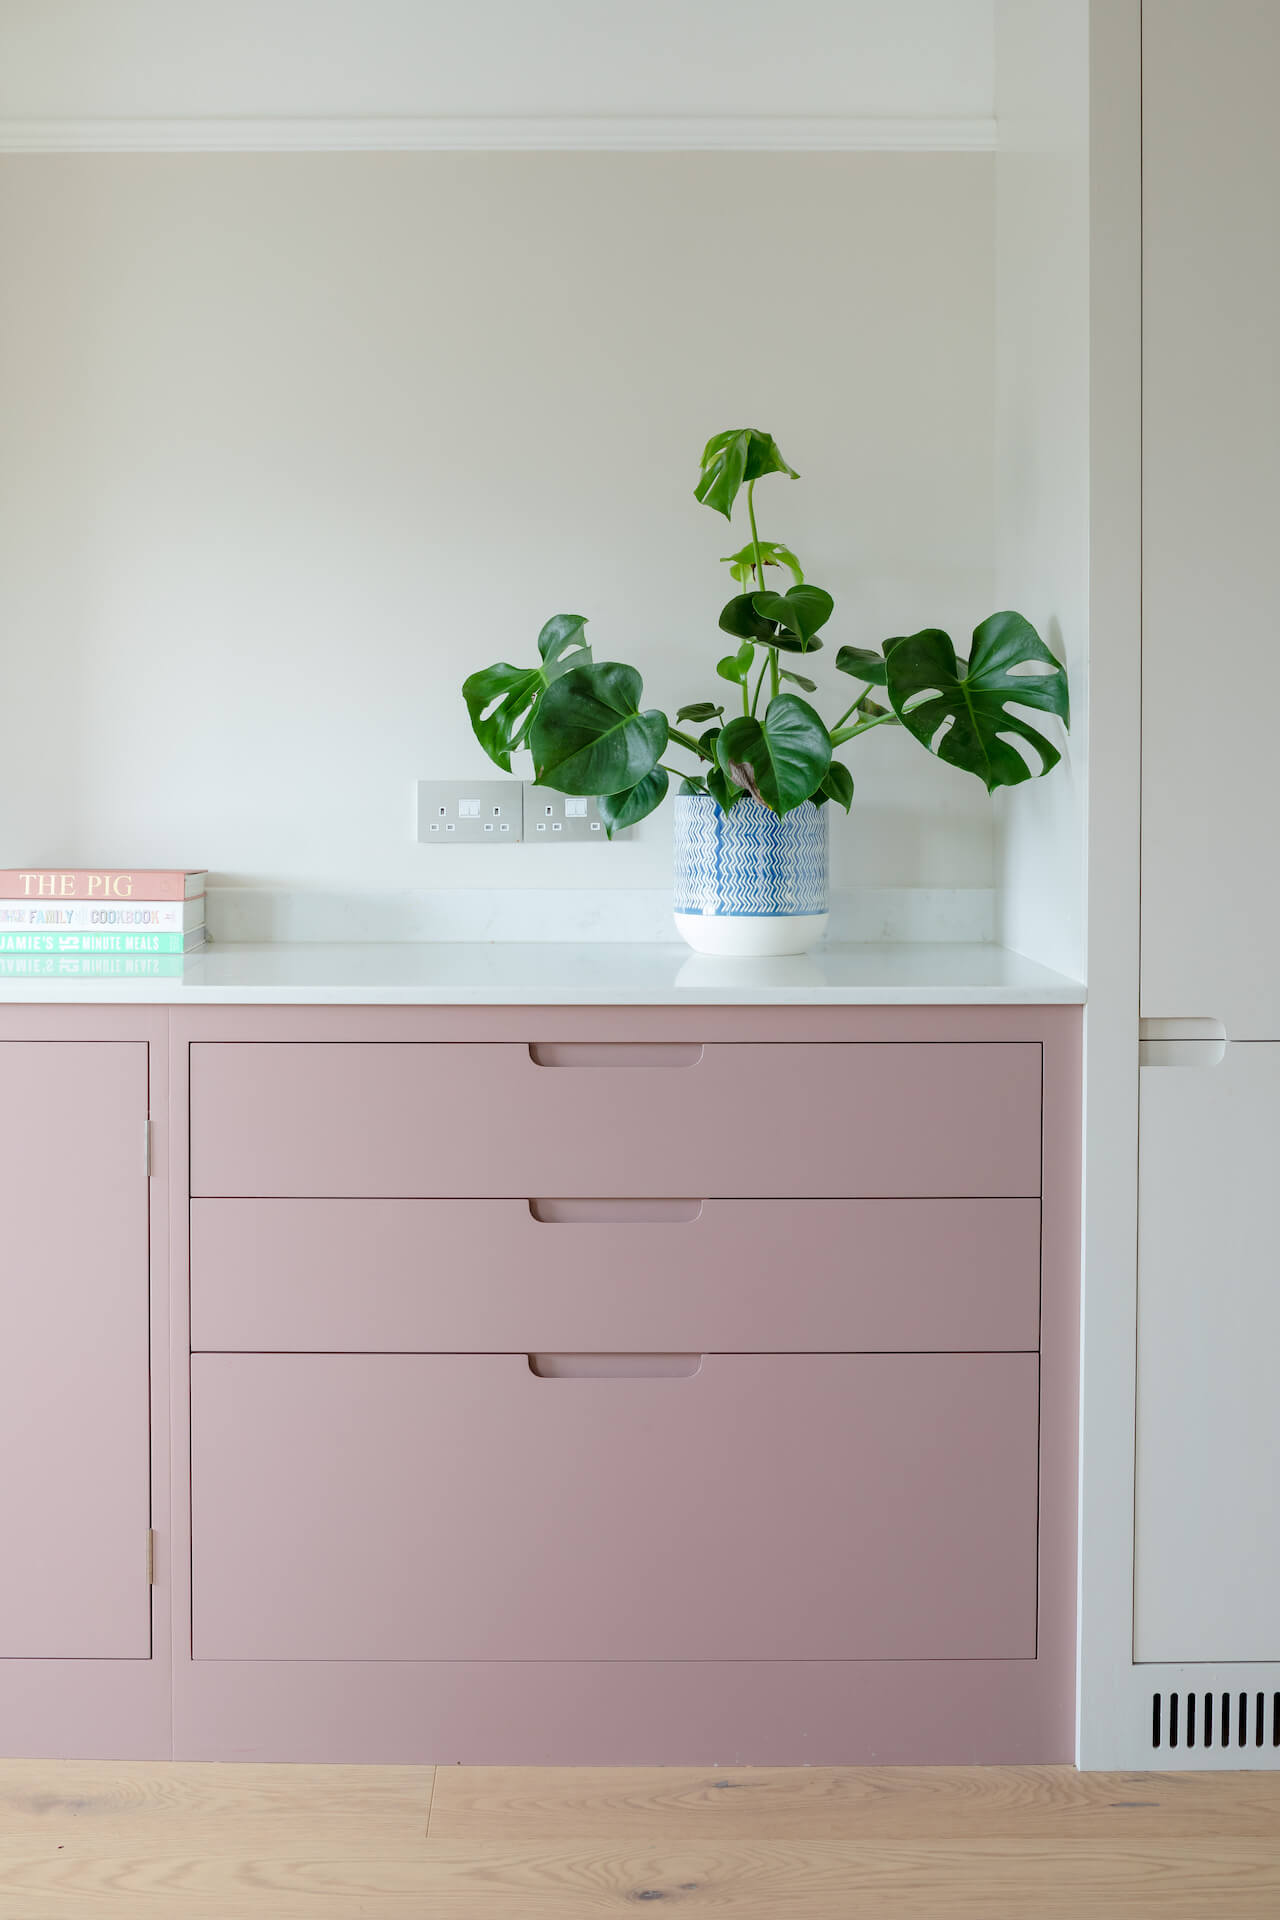 The Pink Kitchen - Sustainable Kitchens - Sulking Room Pink